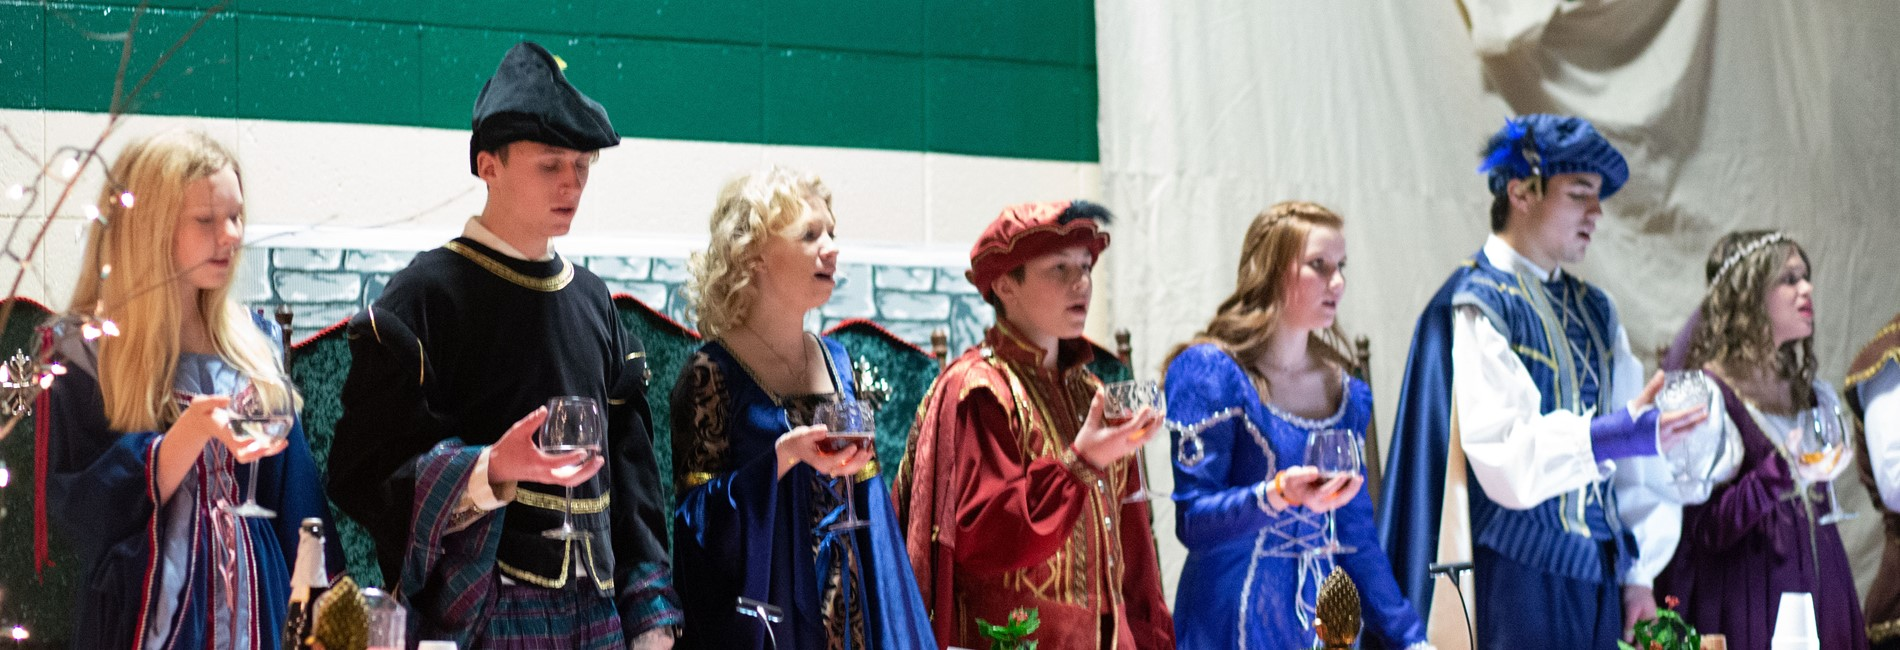 2019 Madrigal Christmas performance